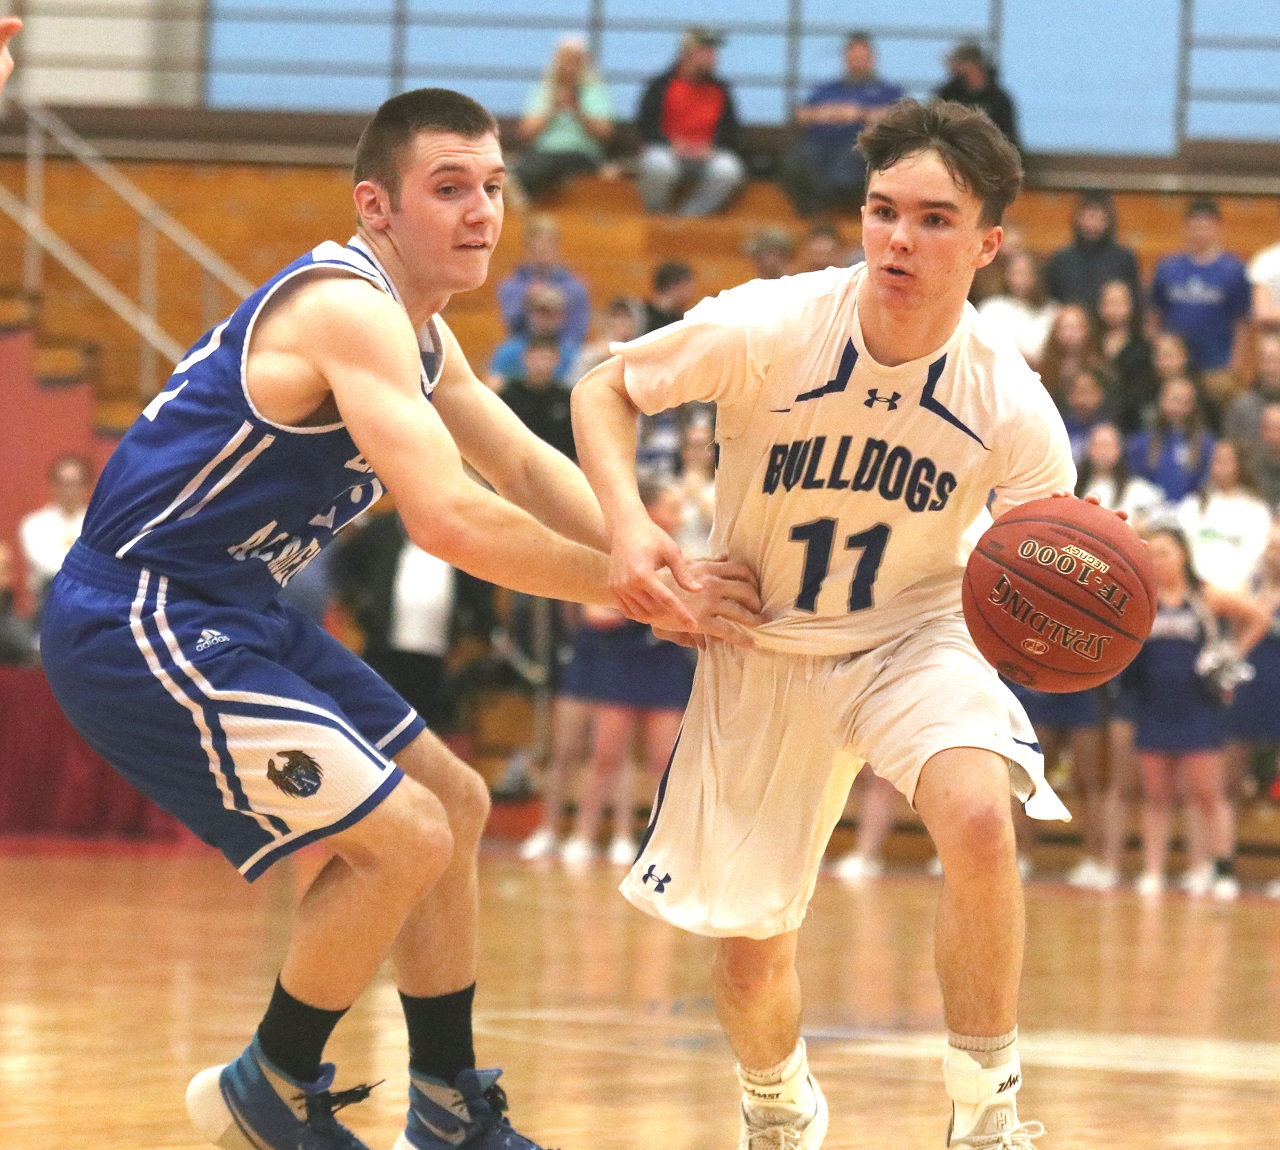 Erskine, Lawrence in 2019 tournament action | The Town Line Newspaper